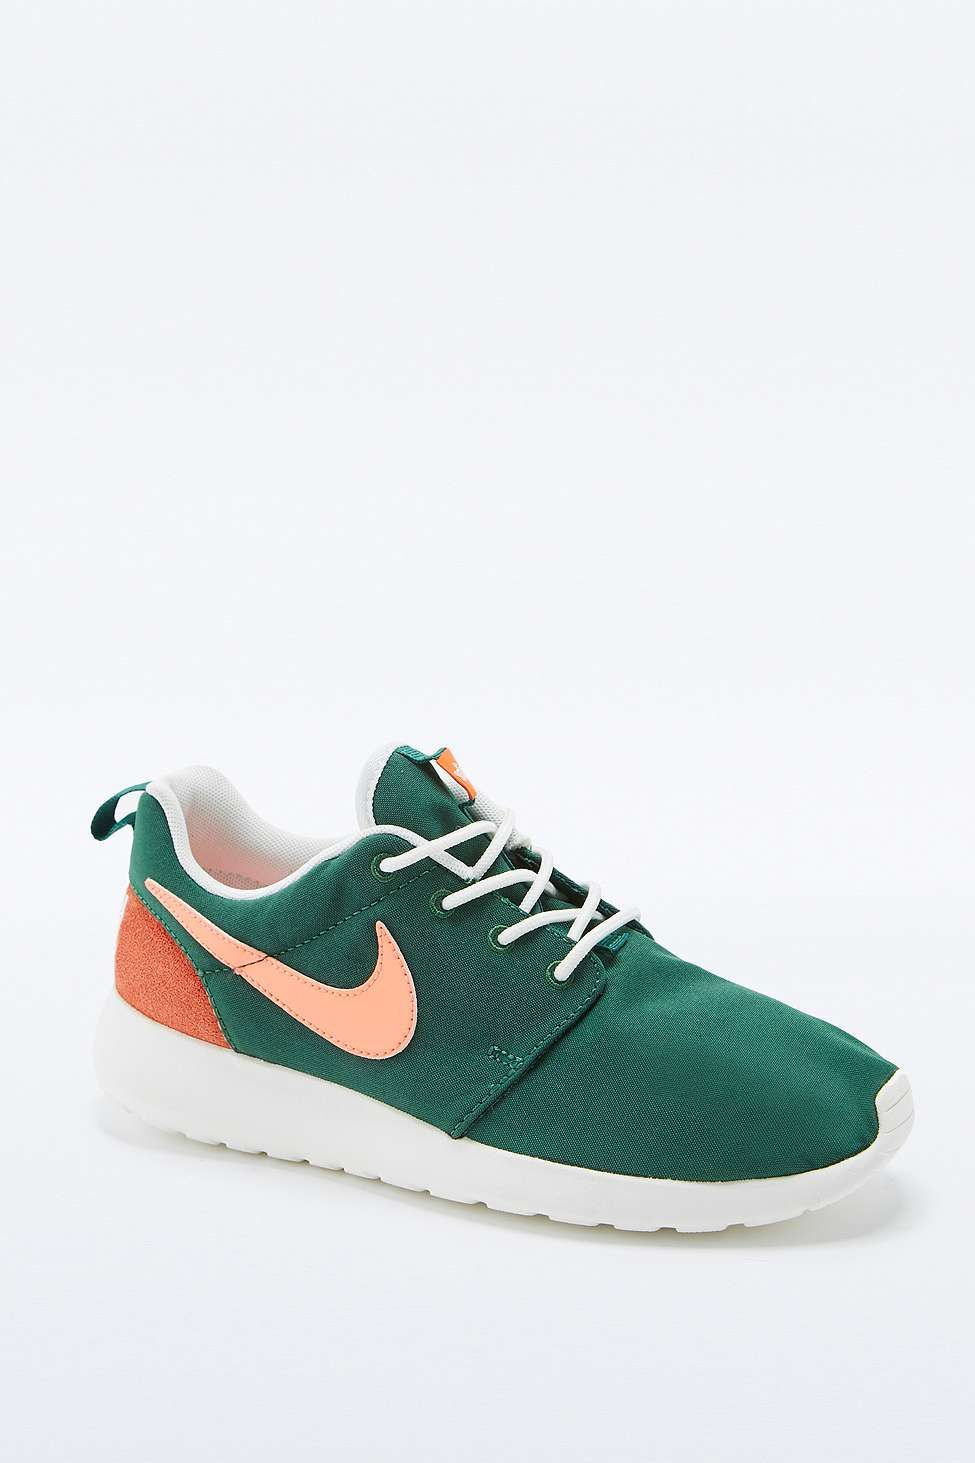 Nike Roshe Run Retro Green Trainers